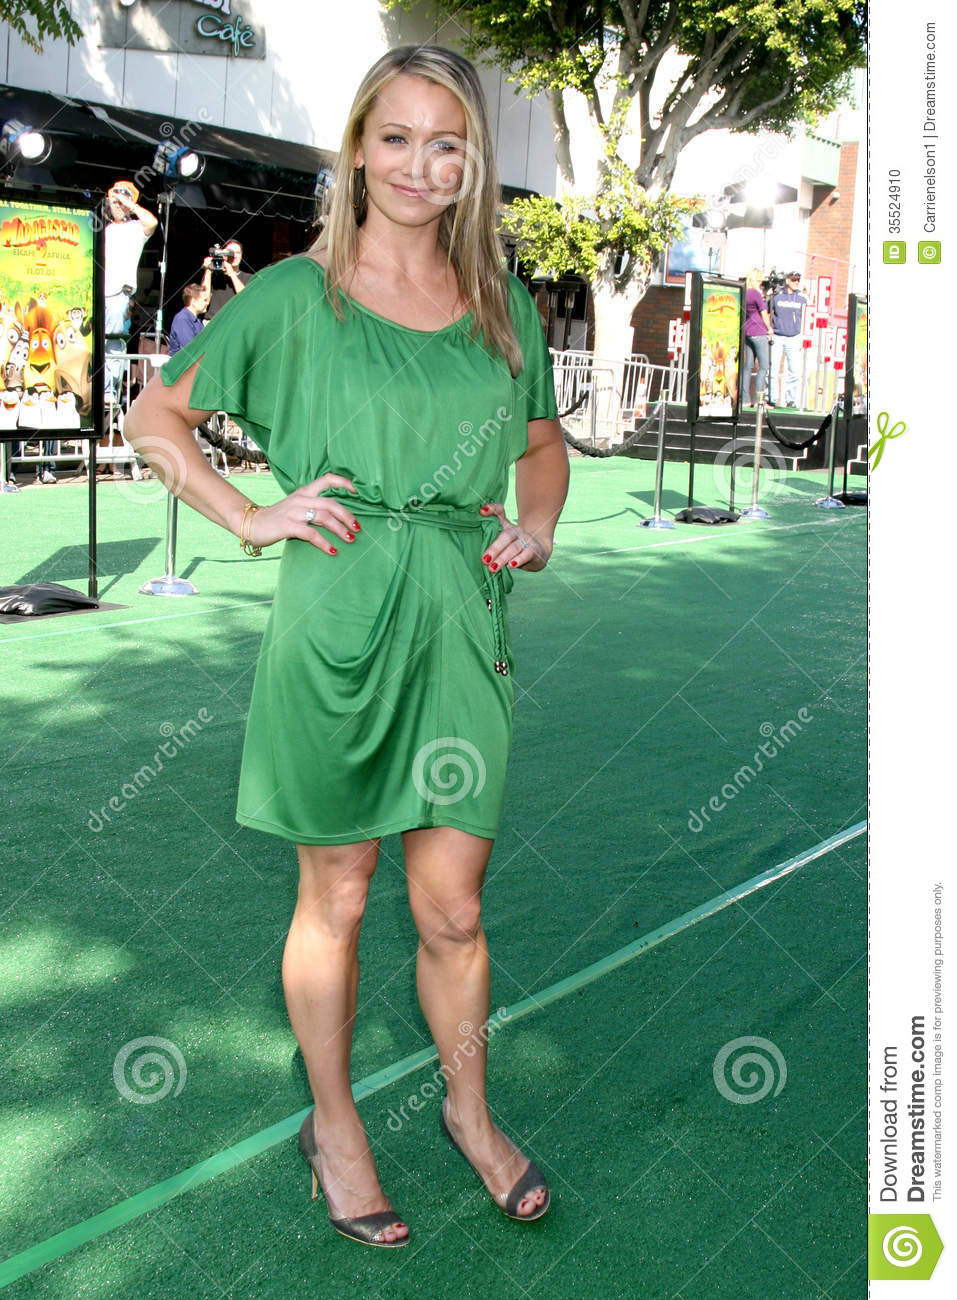 christine taylor imdbchristine taylor friends, christine taylor and katrina bowden, christine taylor botox, christine taylor instagram, christine taylor and ben stiller, christine taylor princeton, christine taylor arrested development, christine taylor elementary, christine taylor, christine taylor imdb, christine taylor movies, christine taylor zoolander 2, christine taylor wiki, christine taylor 2015, christine taylor actress, christine taylor stiller, christine taylor zoolander, christine taylor net worth, christine taylor brady bunch, christine taylor naperville